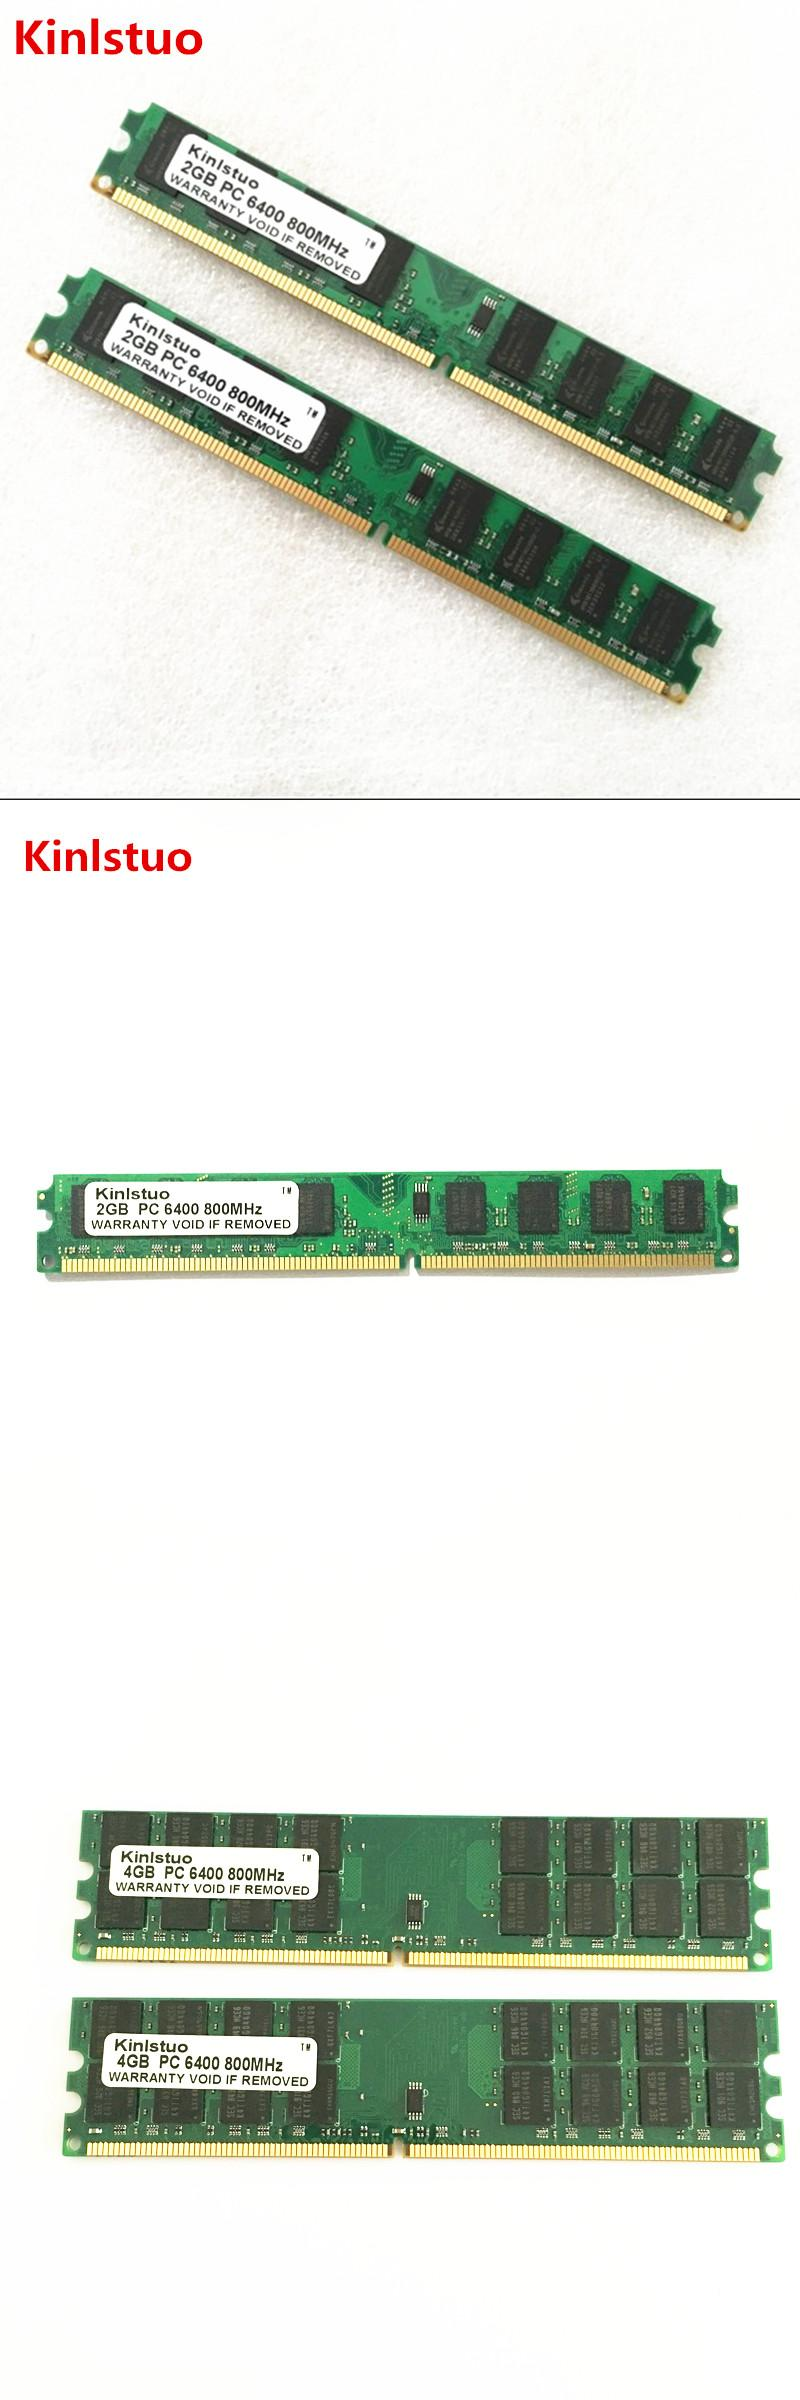 Visit To Buy Kinlstuo Ddr2 1gb 2gb 4gb 800mhz 667mhz Memory For Ram Memori Pake Hedsink Desktop